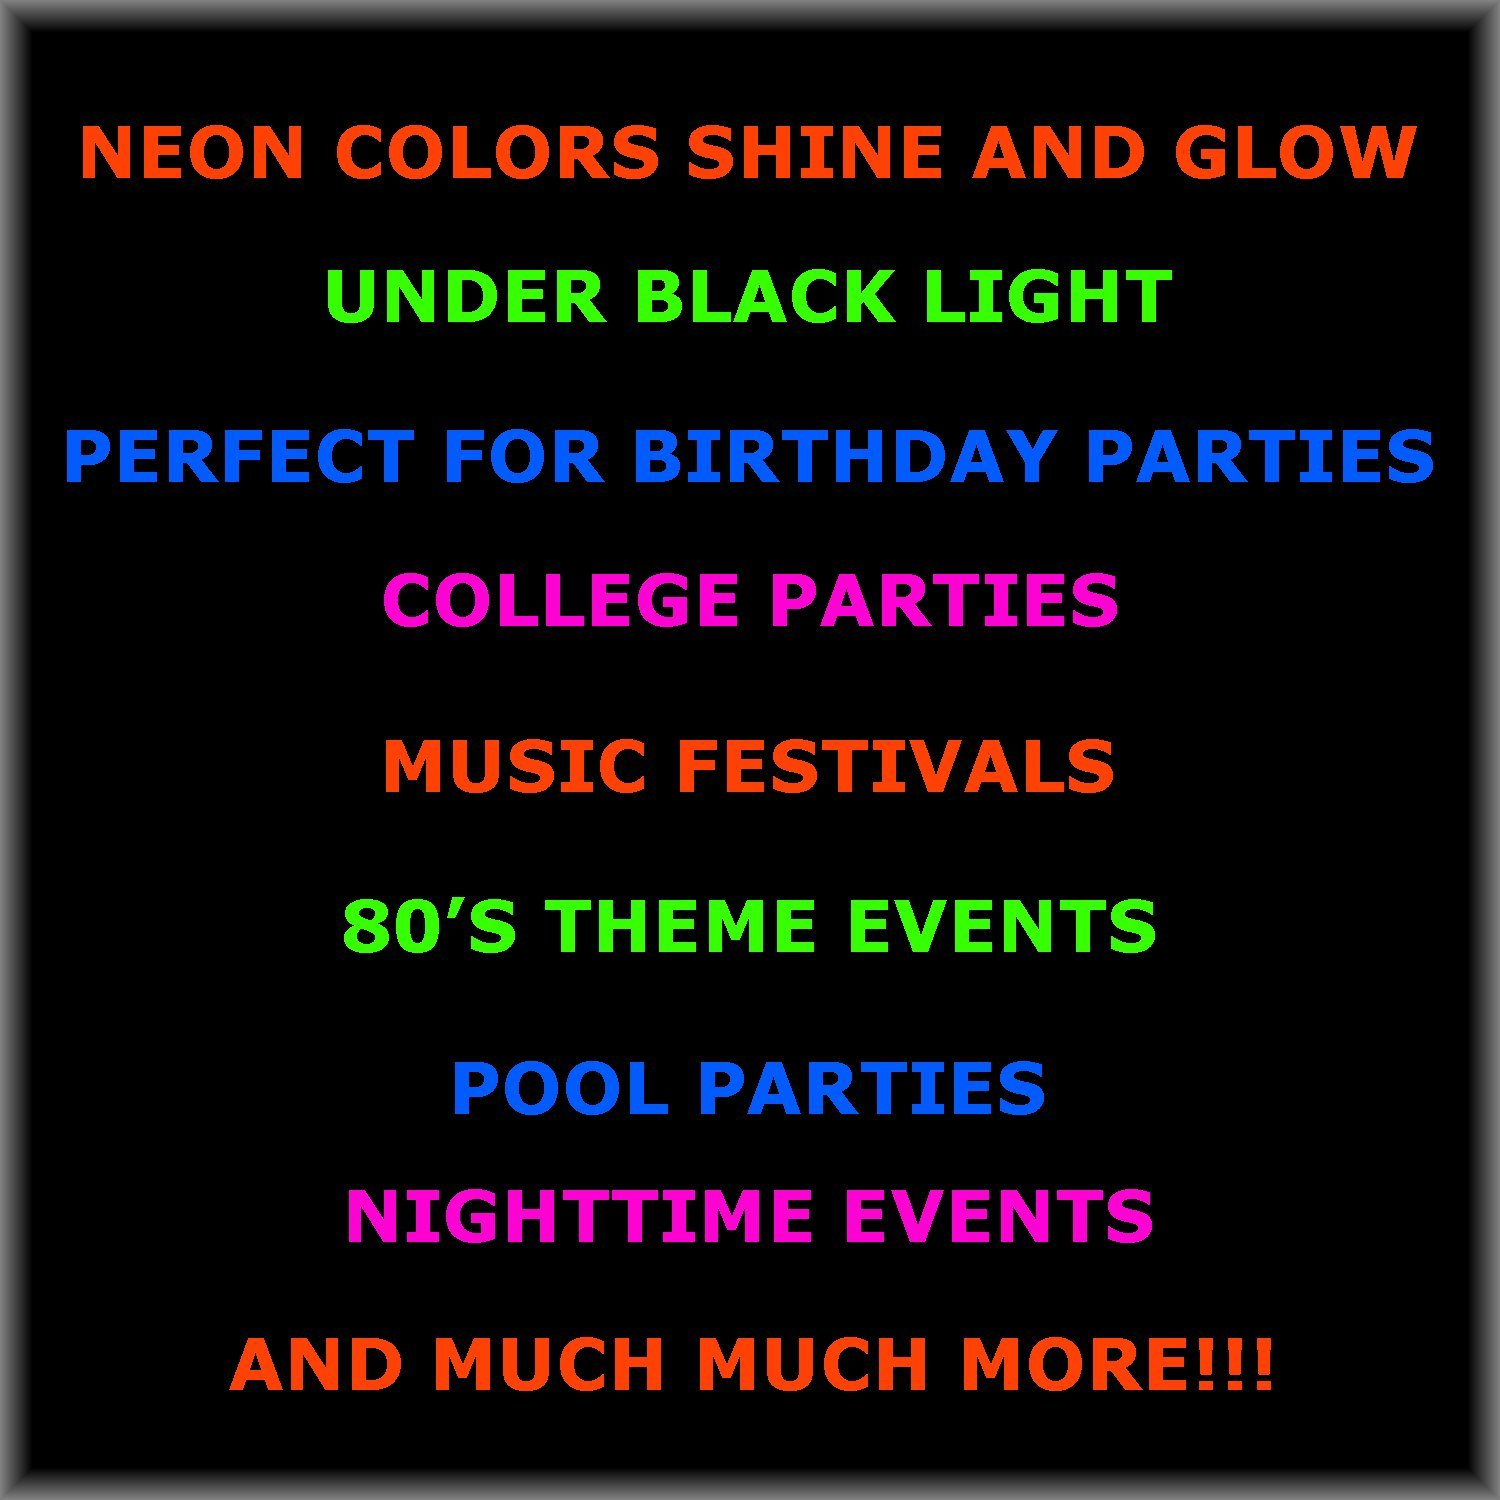 Neon Party Cups - 96 Pack - 48 Soft 18 OZ Beer Cups and 48 Hard plastic 1 OZ Shot Glasses - UV Reactive Blacklight Colors - Pink, Green, Blue, Orange - Birthdays, Clubs, 80s Festivals, Beer Pong, Etc.